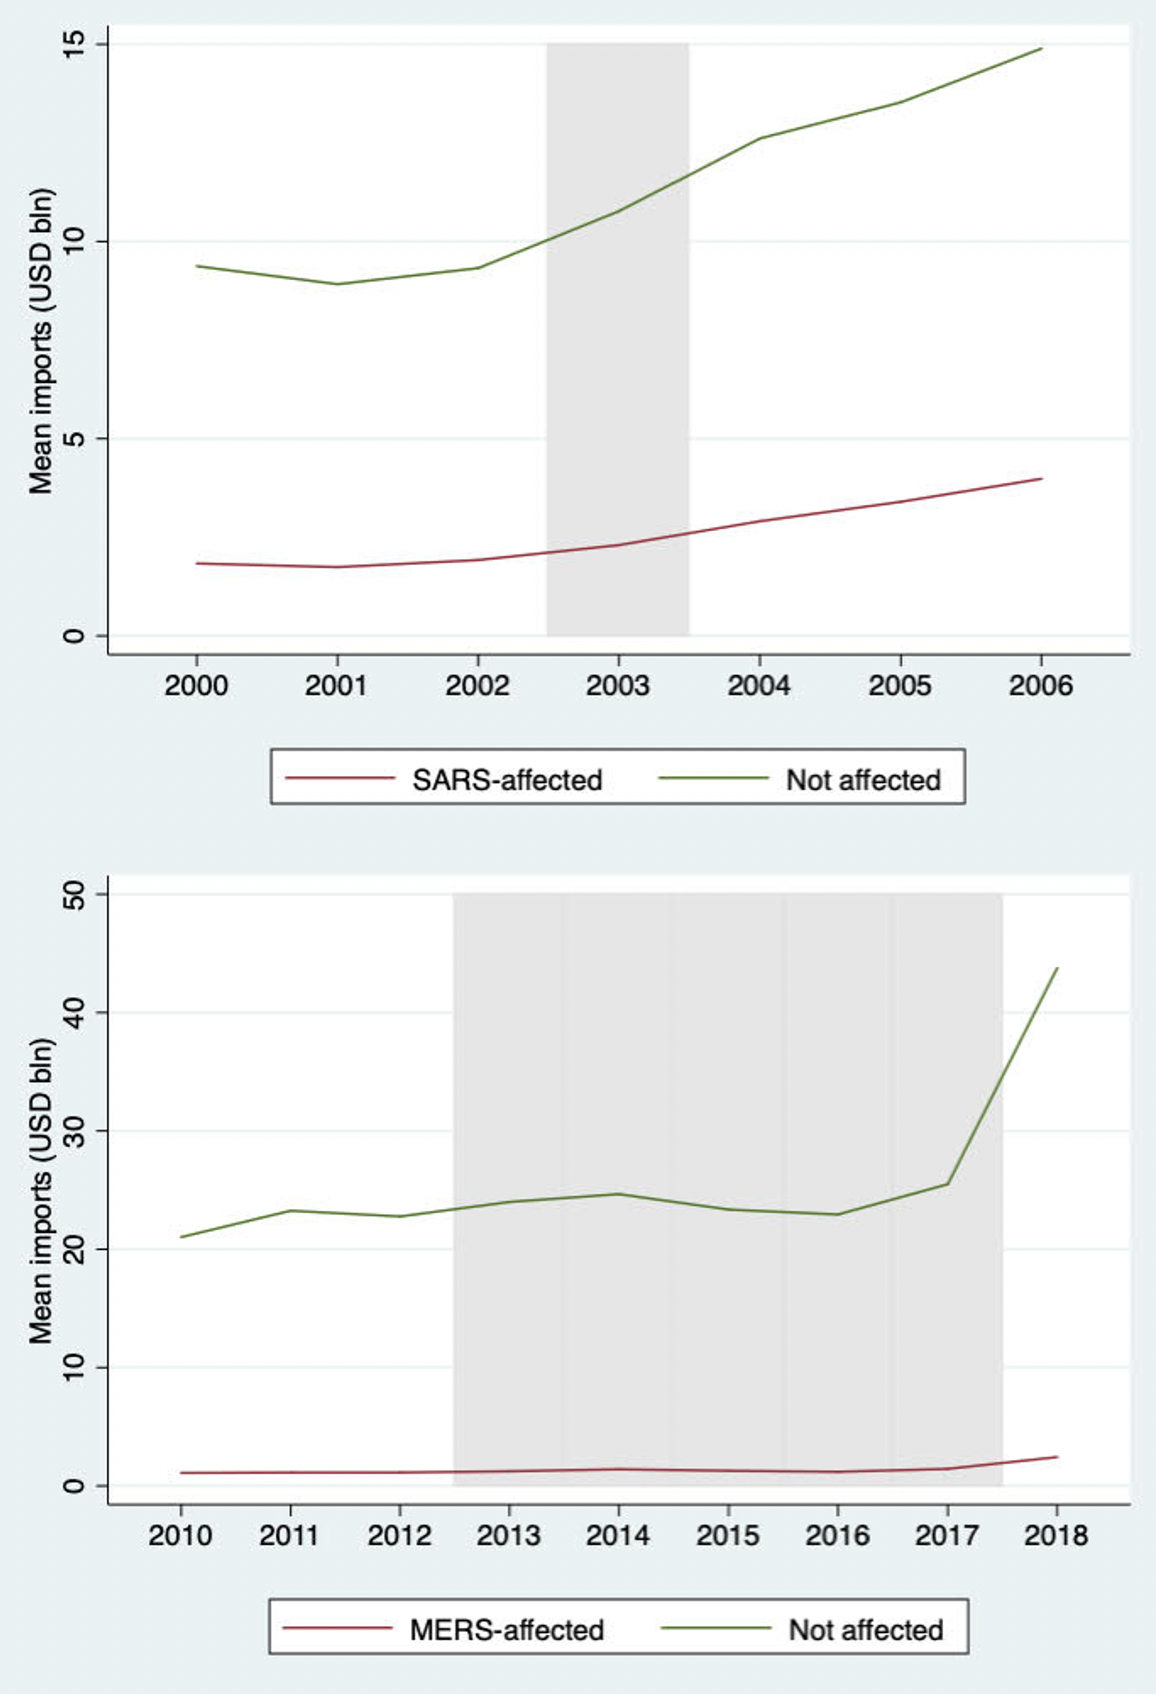 Global value chain responses to previous health shocks 2